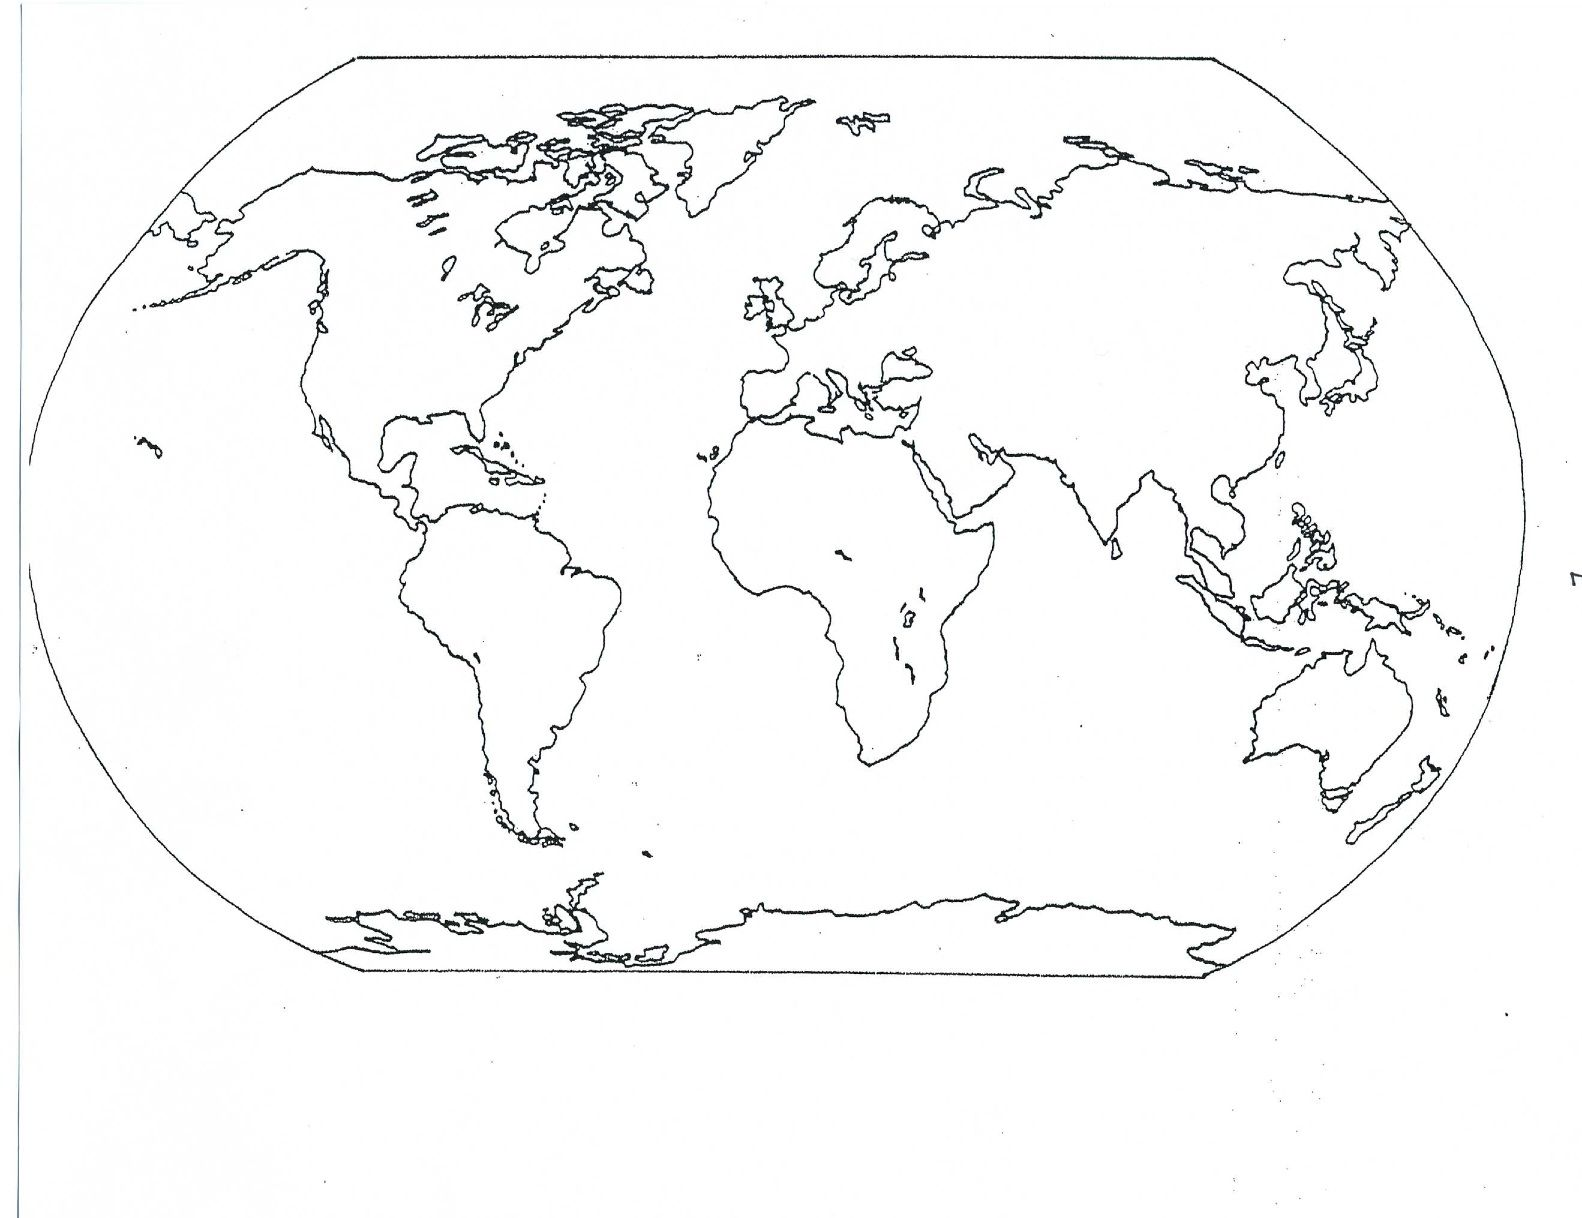 Blank Seven Continents Map | Mr.Guerrieros Blog: Blank and Filled ...